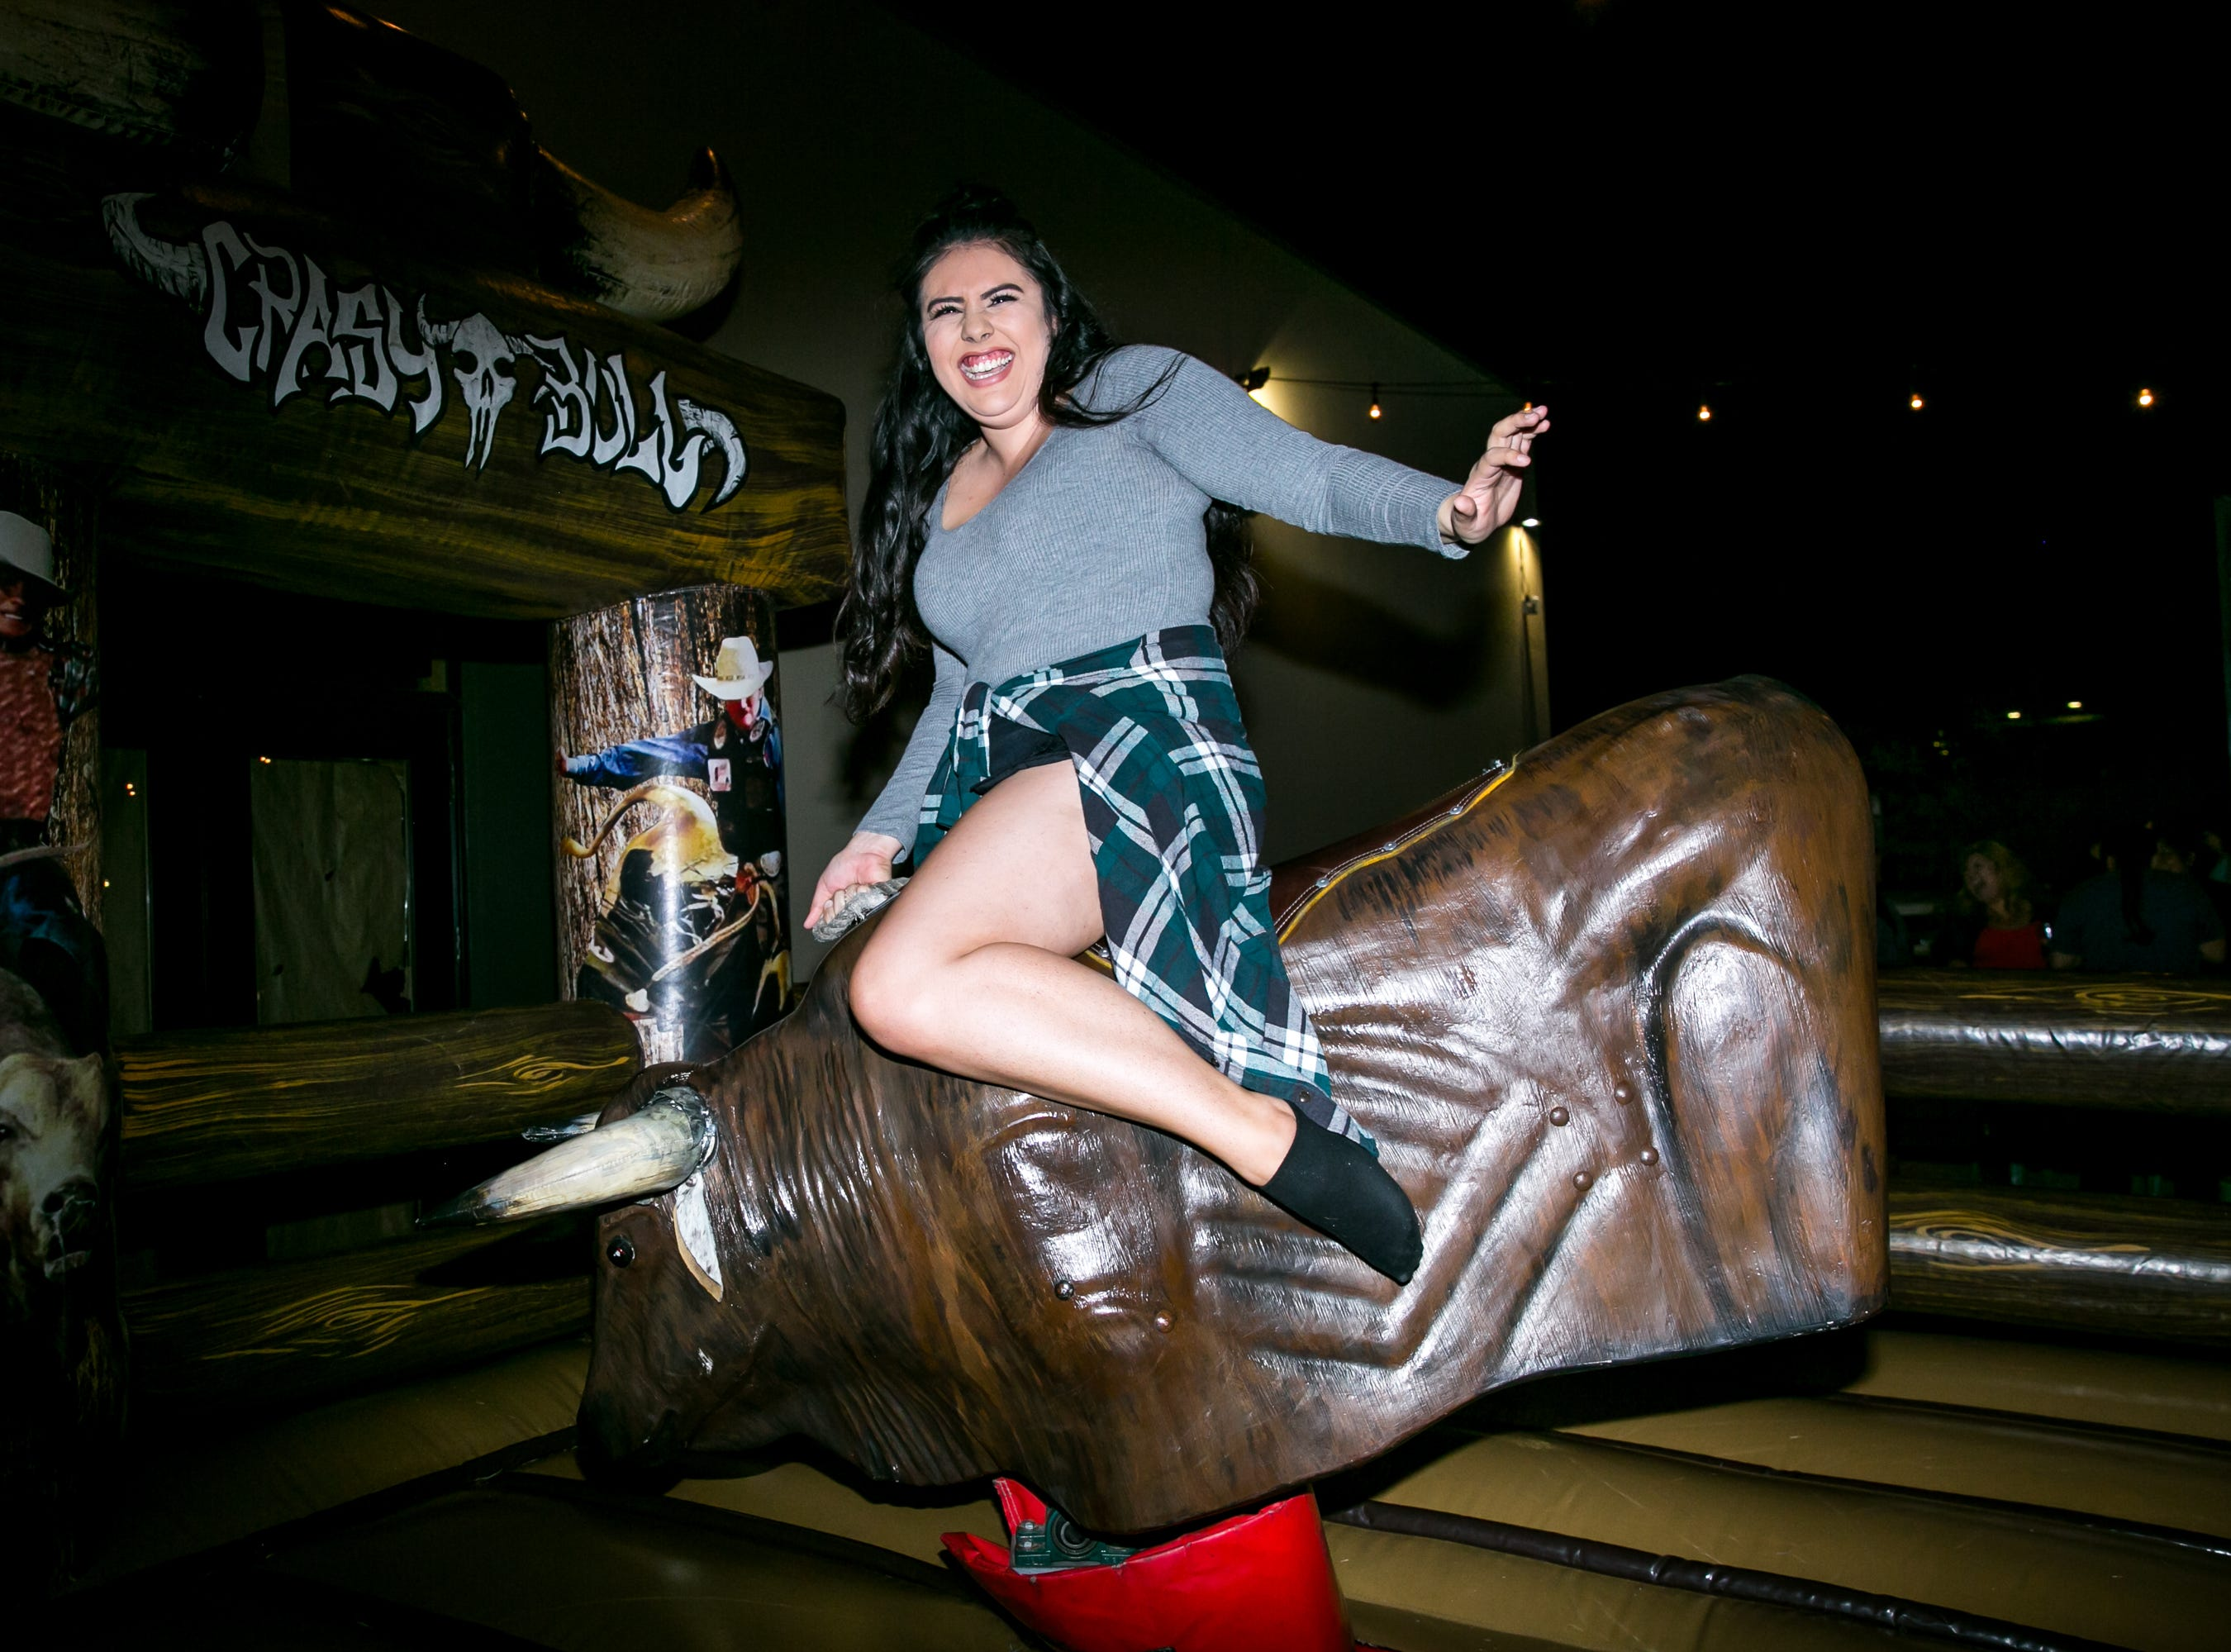 She grabbed the bull by the horns during the KMLE Country 90's Throwback at The Van Buren on Friday, Jan. 11, 2019.